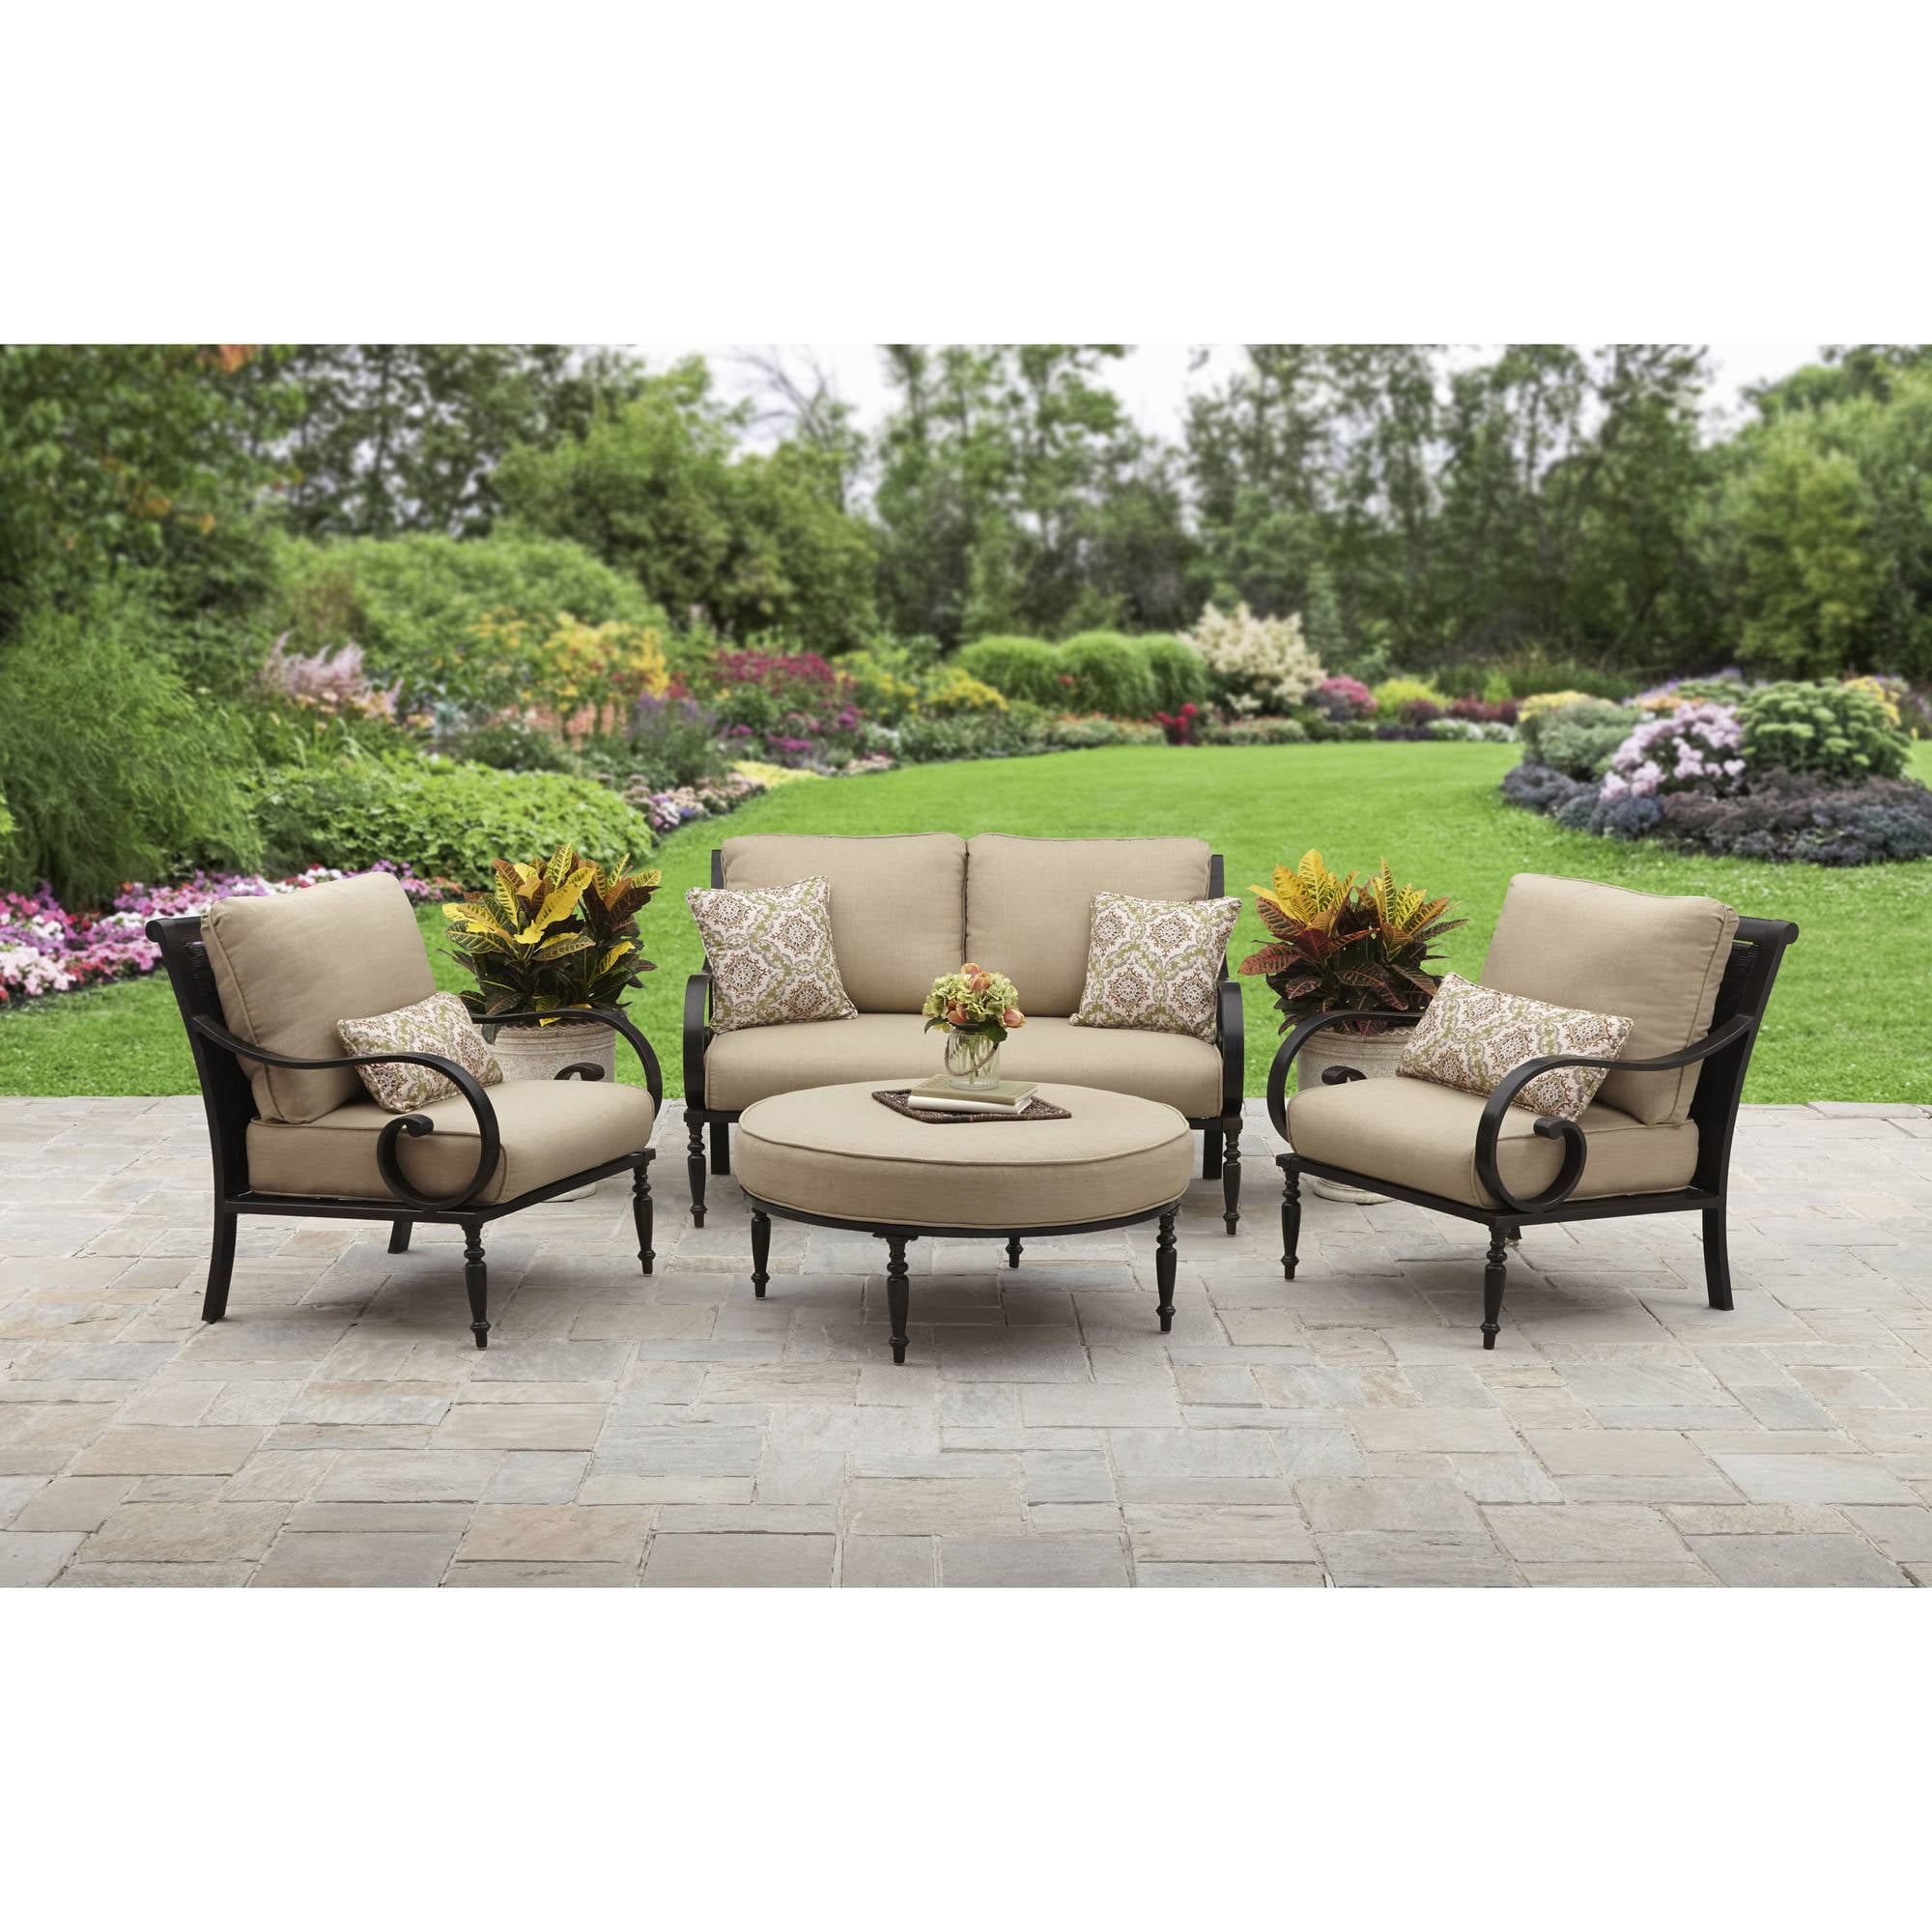 Better Homes And Garden Carter Hills Outdoor Conversation Set, Seats 5    Walmart.com